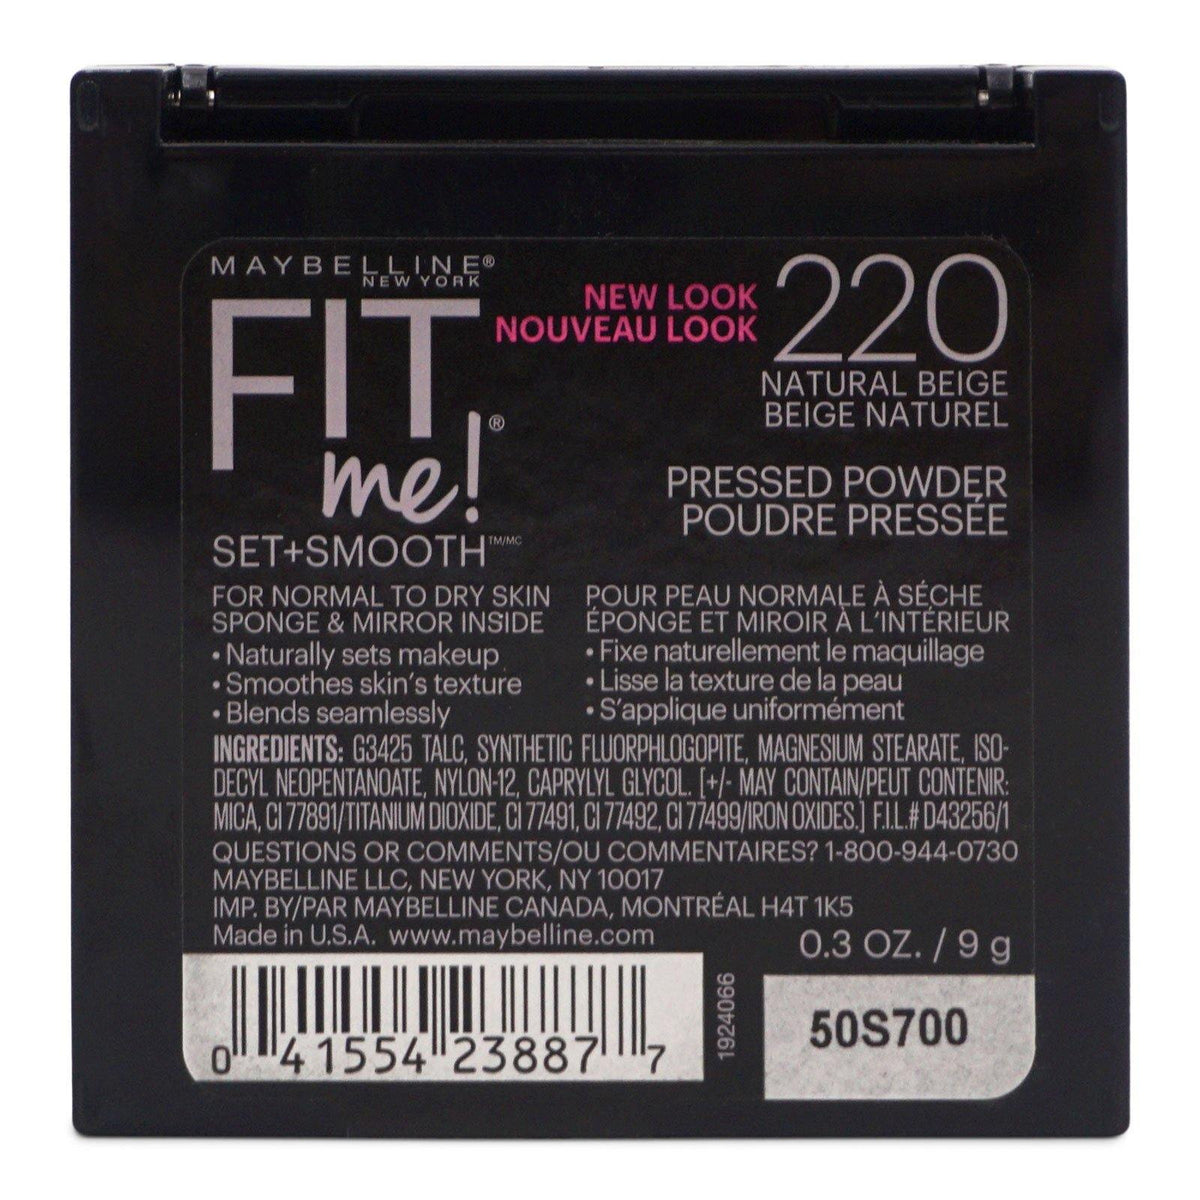 Maybelline Fit Me Set + Smooth Powder  - Natural Beige 220  (24/cs)